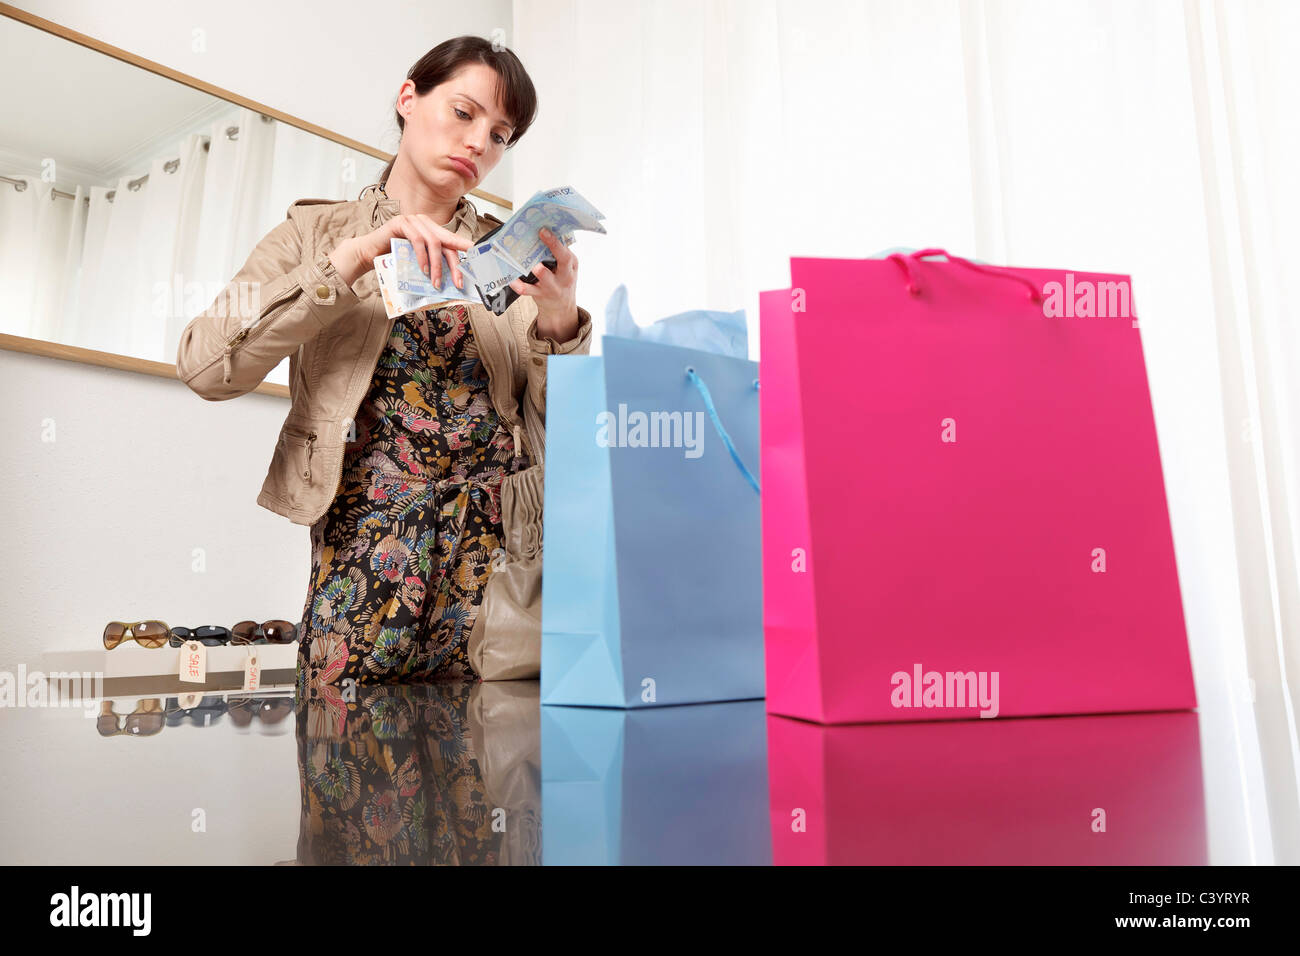 woman checking money from purse - Stock Image